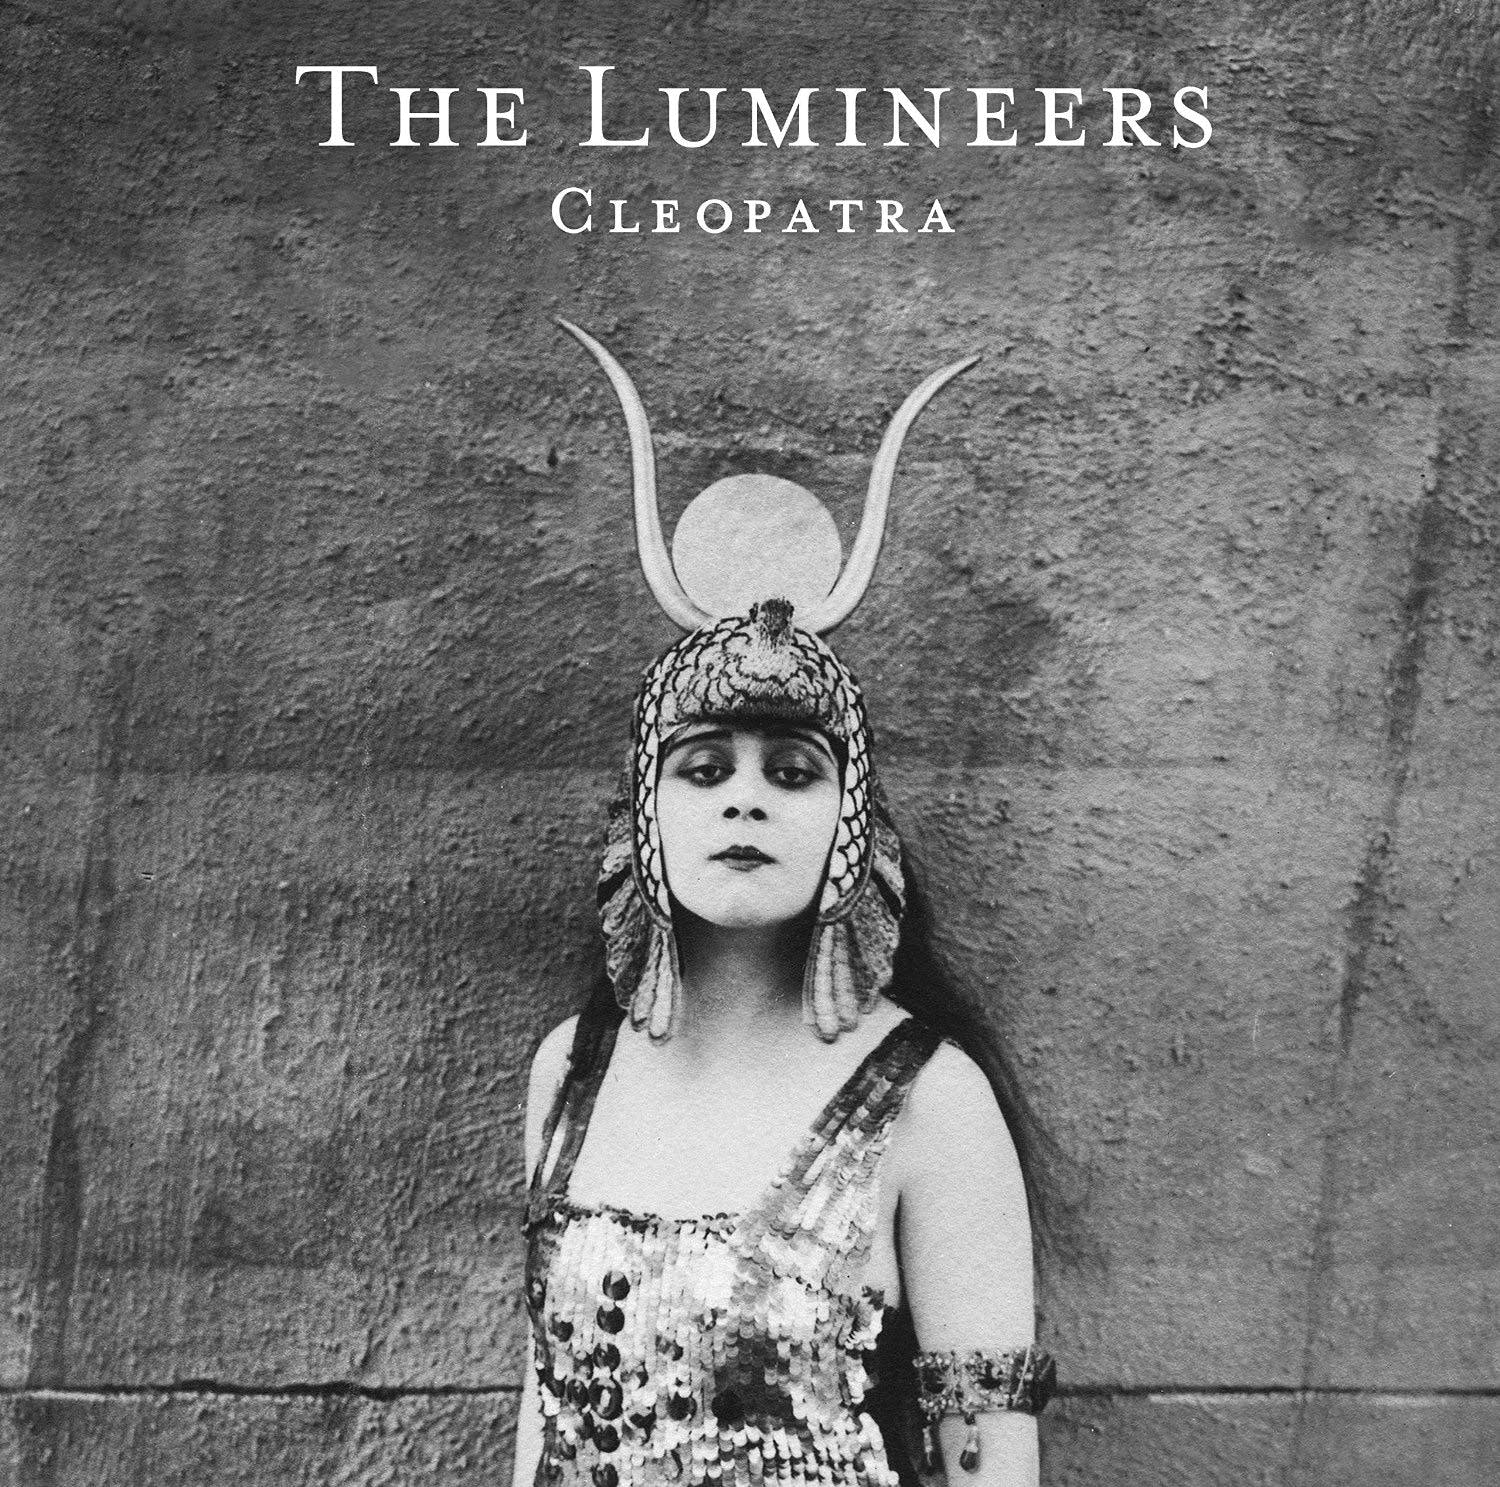 The Lumineers, 'Cleopatra'